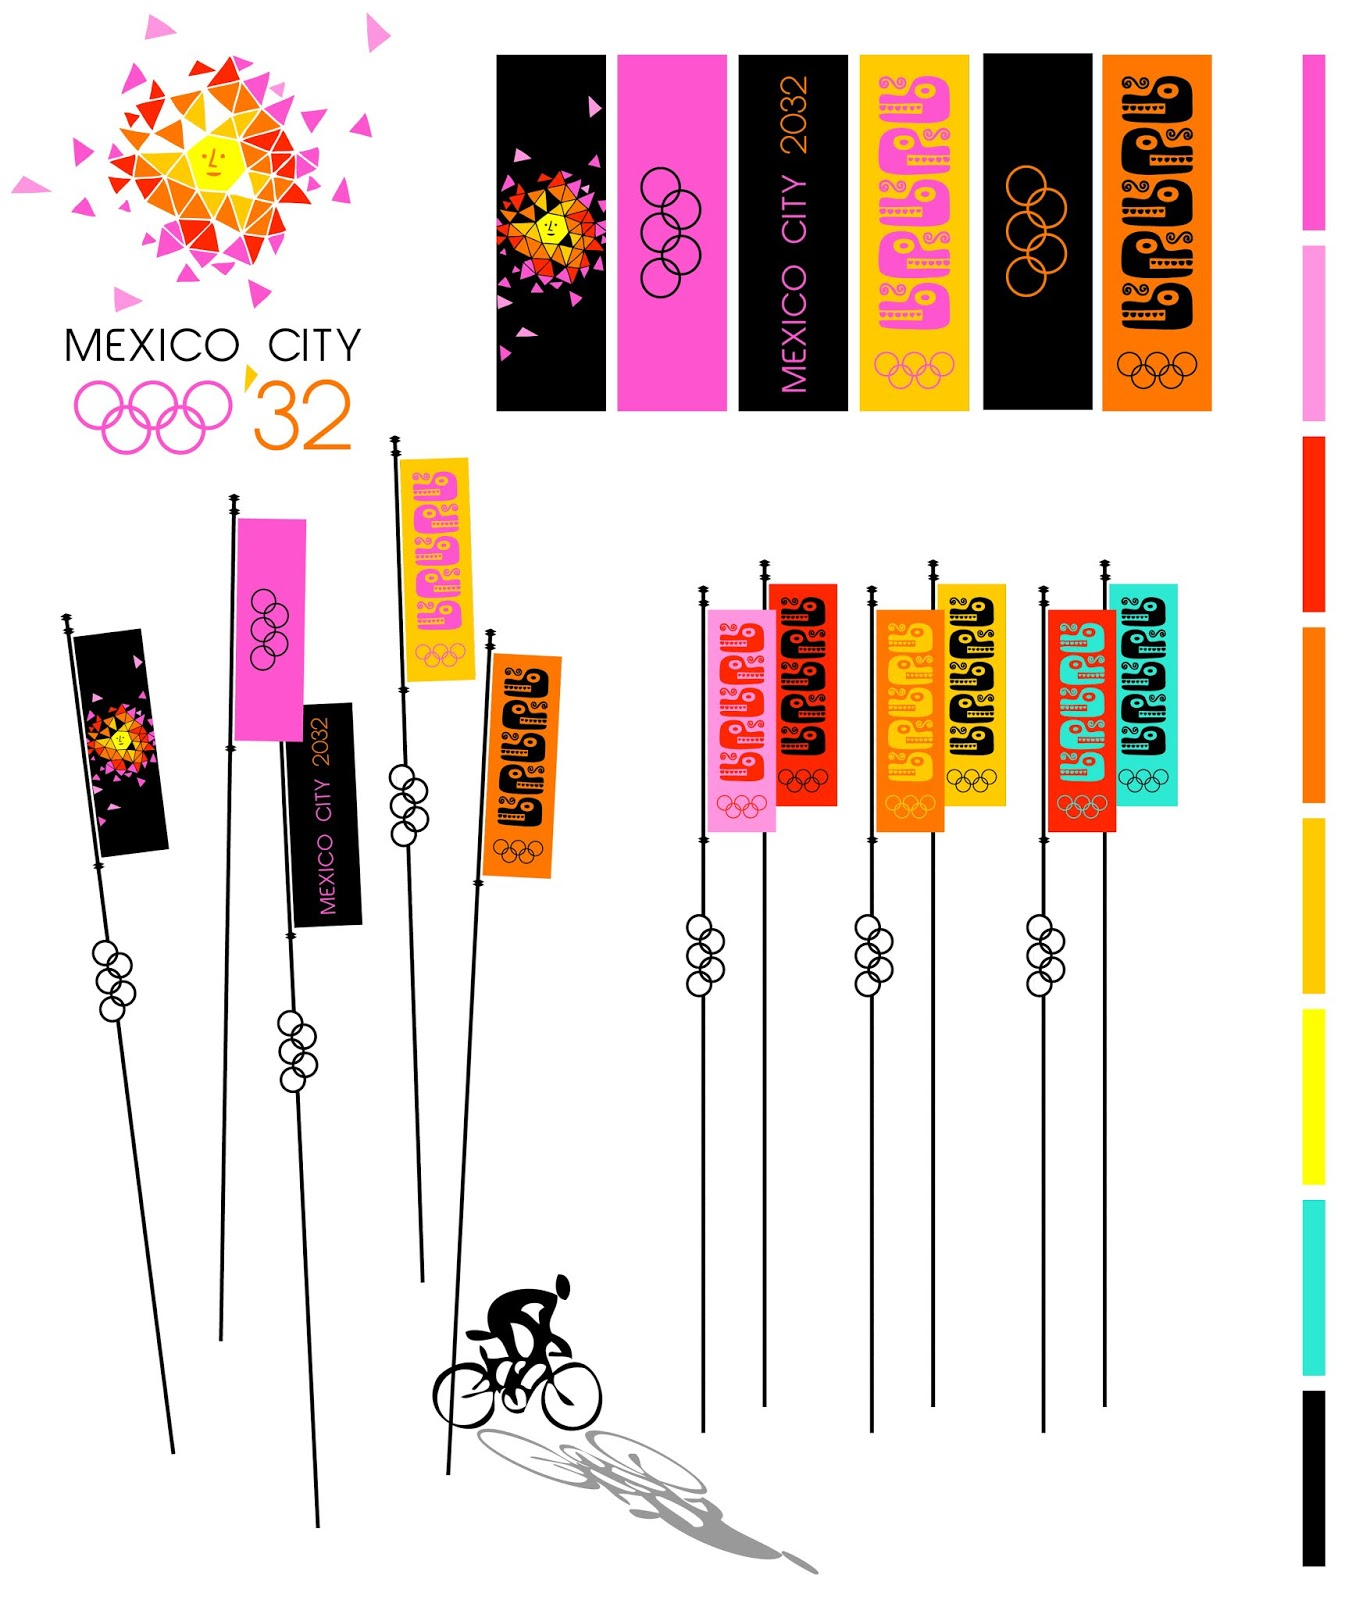 mexico-banners-fancy-poles.jpg